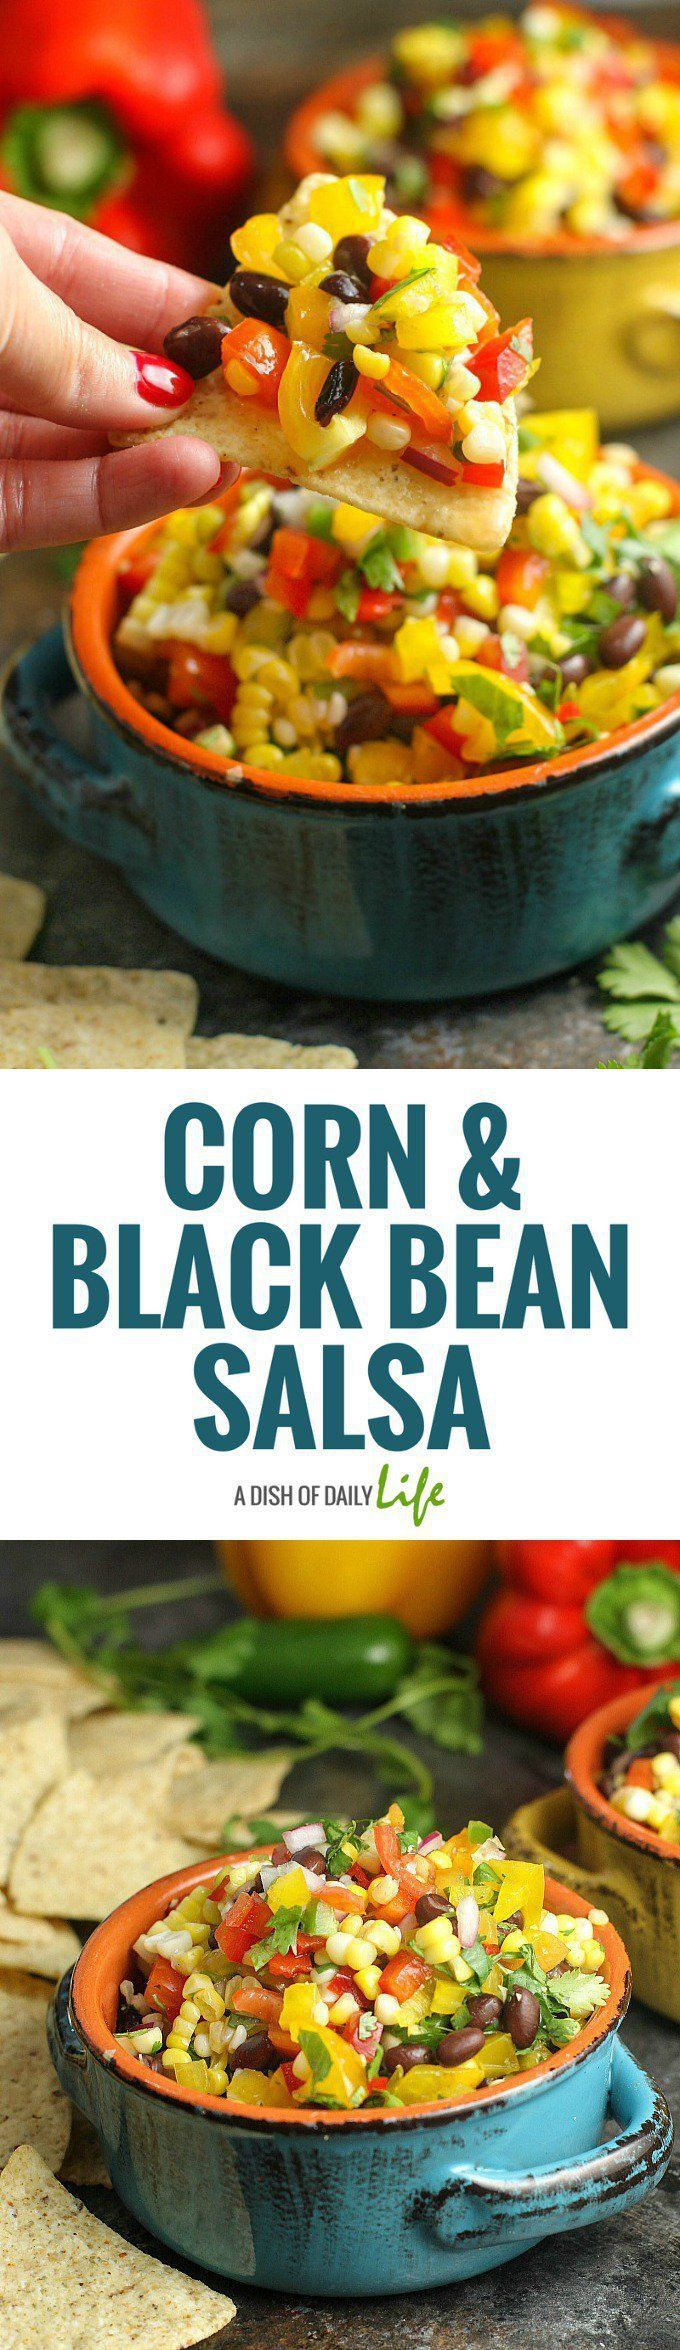 Corn Salsa with Black Beansis the perfect party appetizer for summer get-togethers...serve it with chips or as a salad side dish! Easy to make and healthy as well! Appetizer | Summer side dishes | Salad | Corn | Salsa | Mexican | Healthy | BBQ side dishes | Recipes for parties